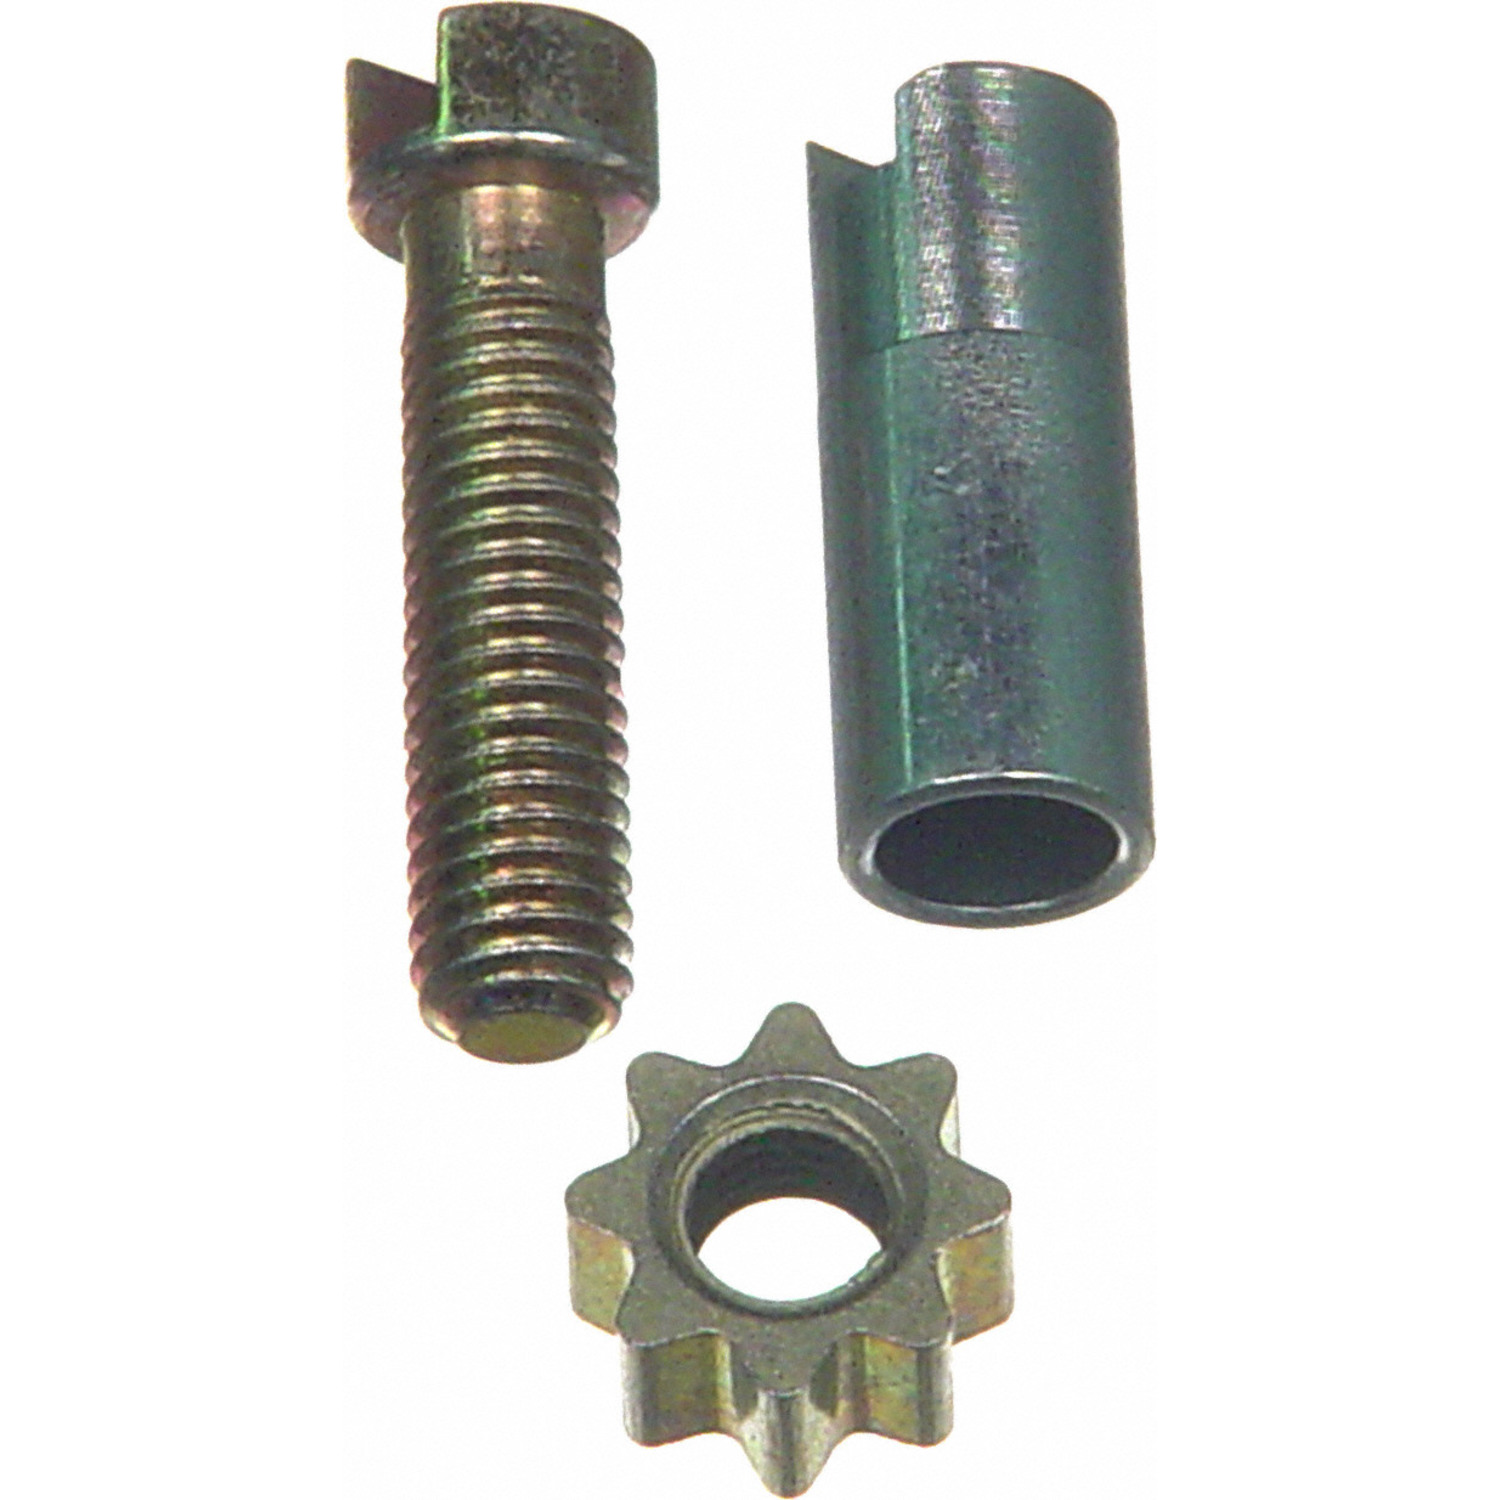 Parking Brake Adjusting Screw Assembly